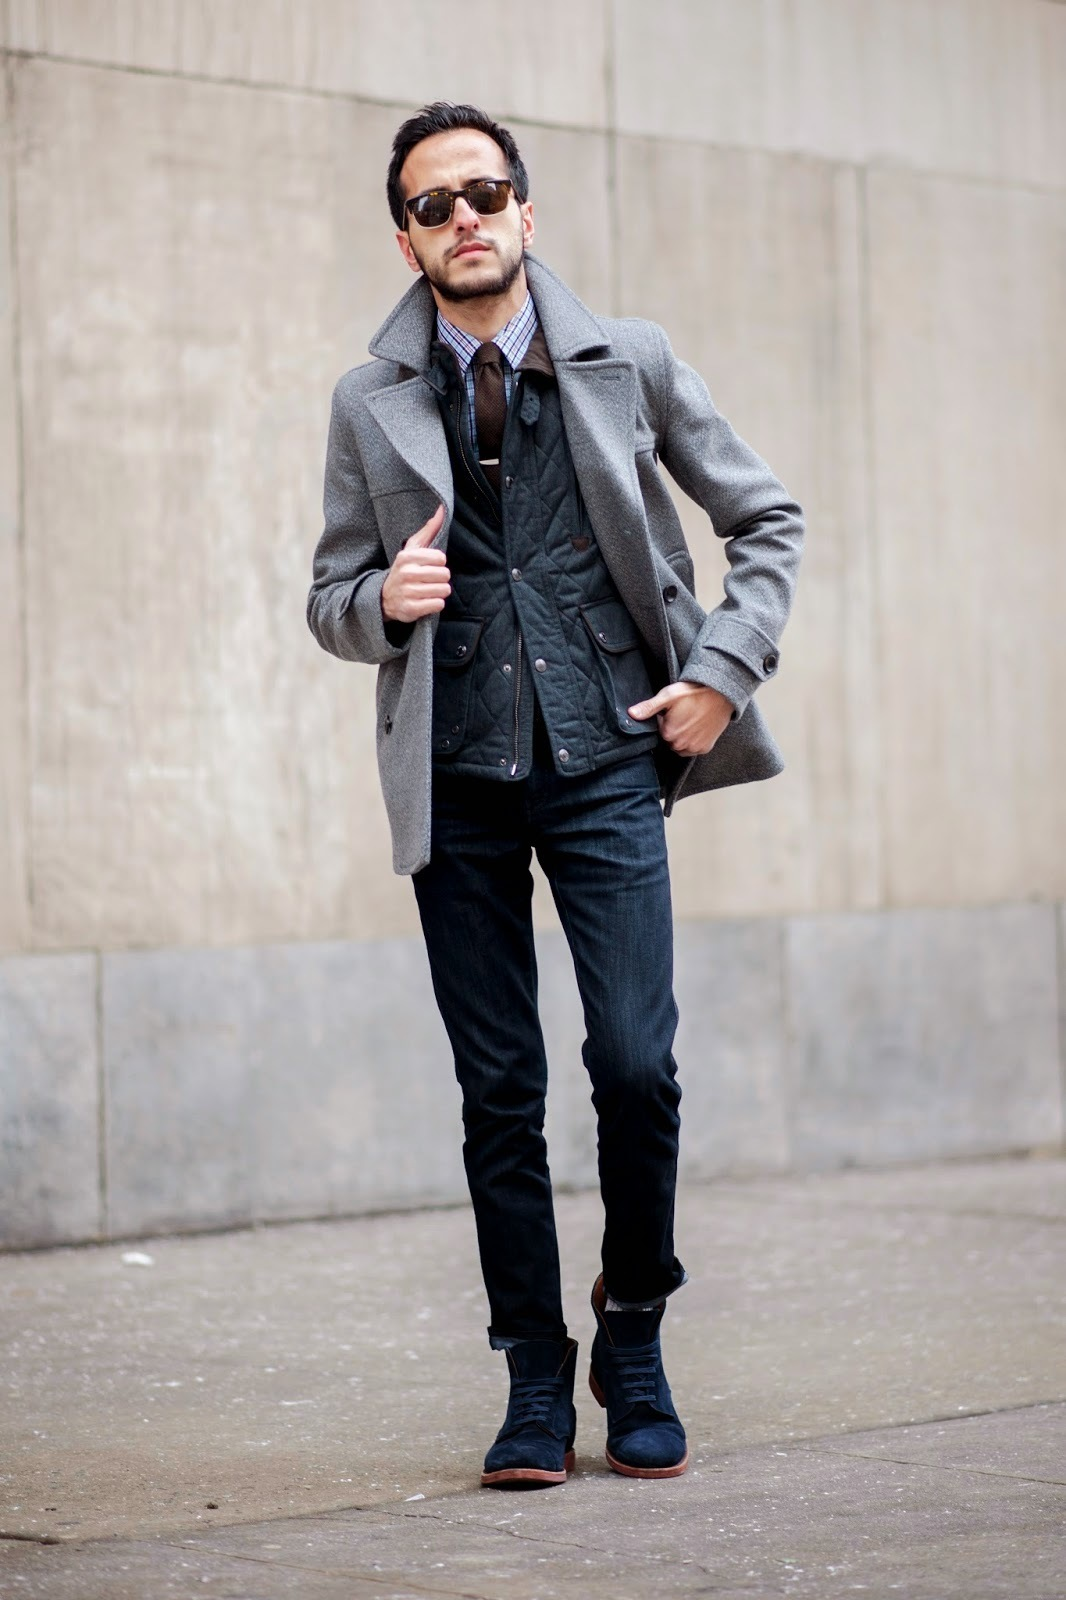 Light Grey Pea Coat Men - Tradingbasis